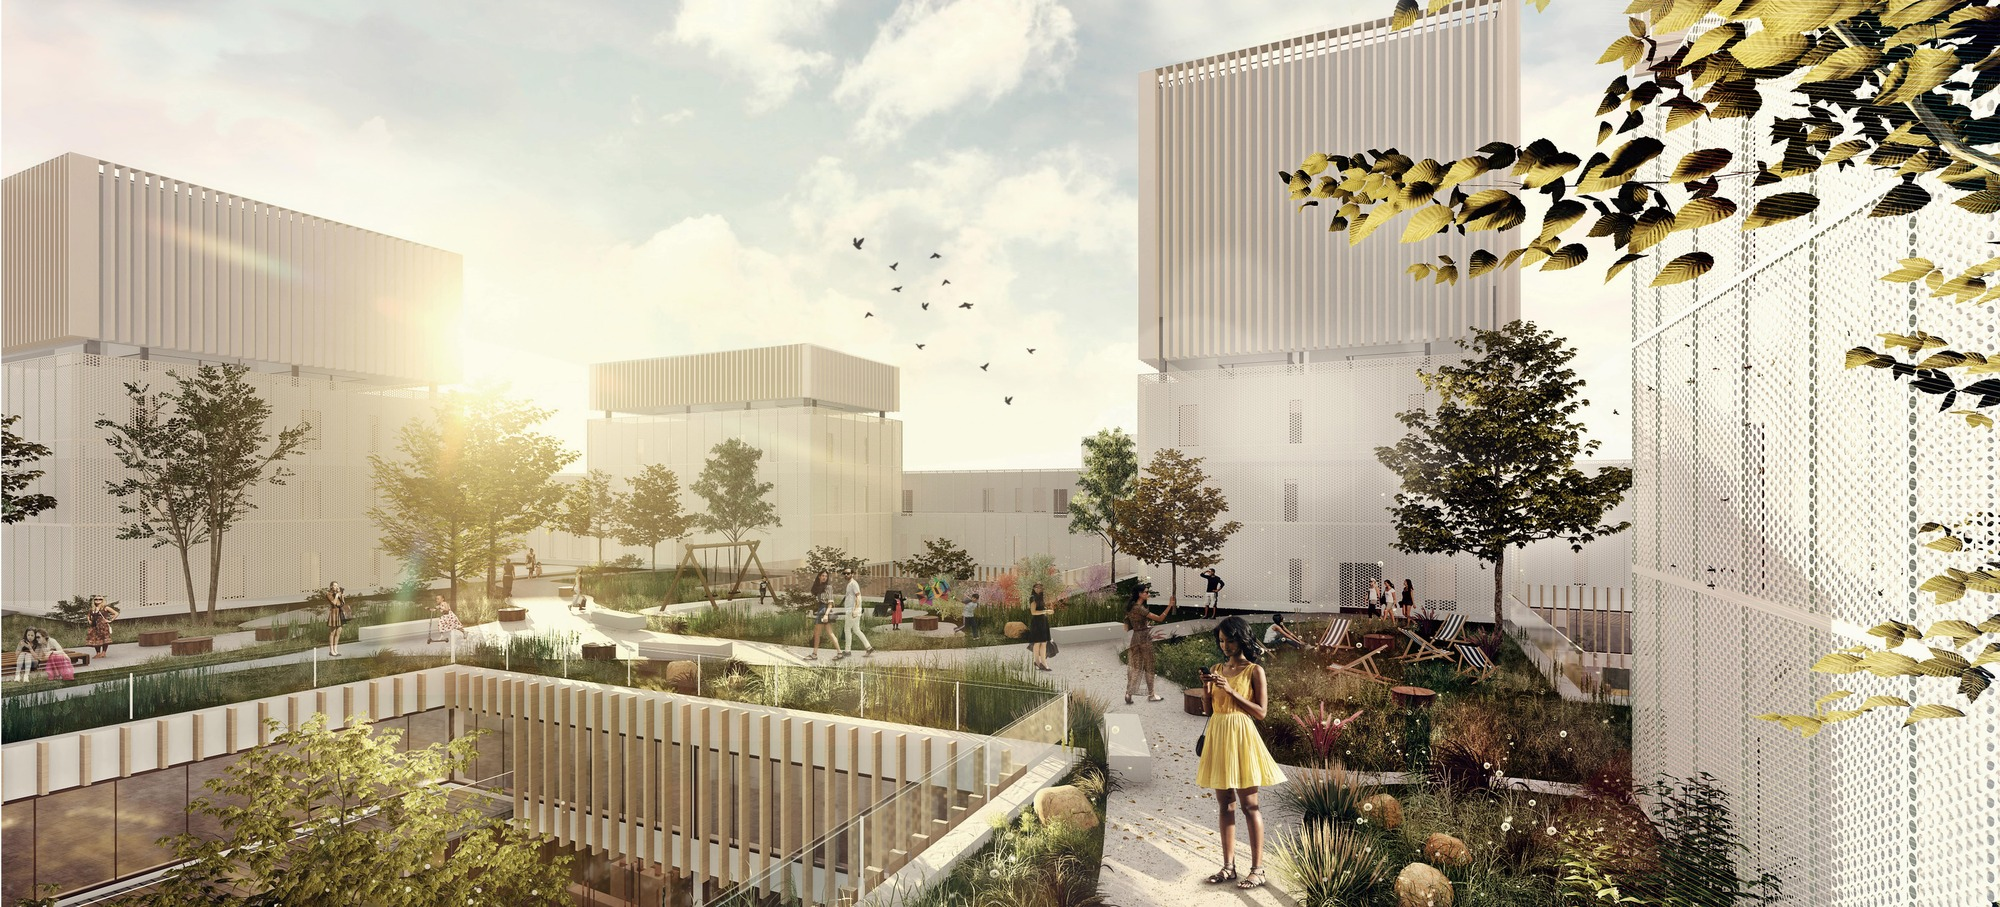 Saint Gobain Announces Winners Of International Student Design Competition Archdaily